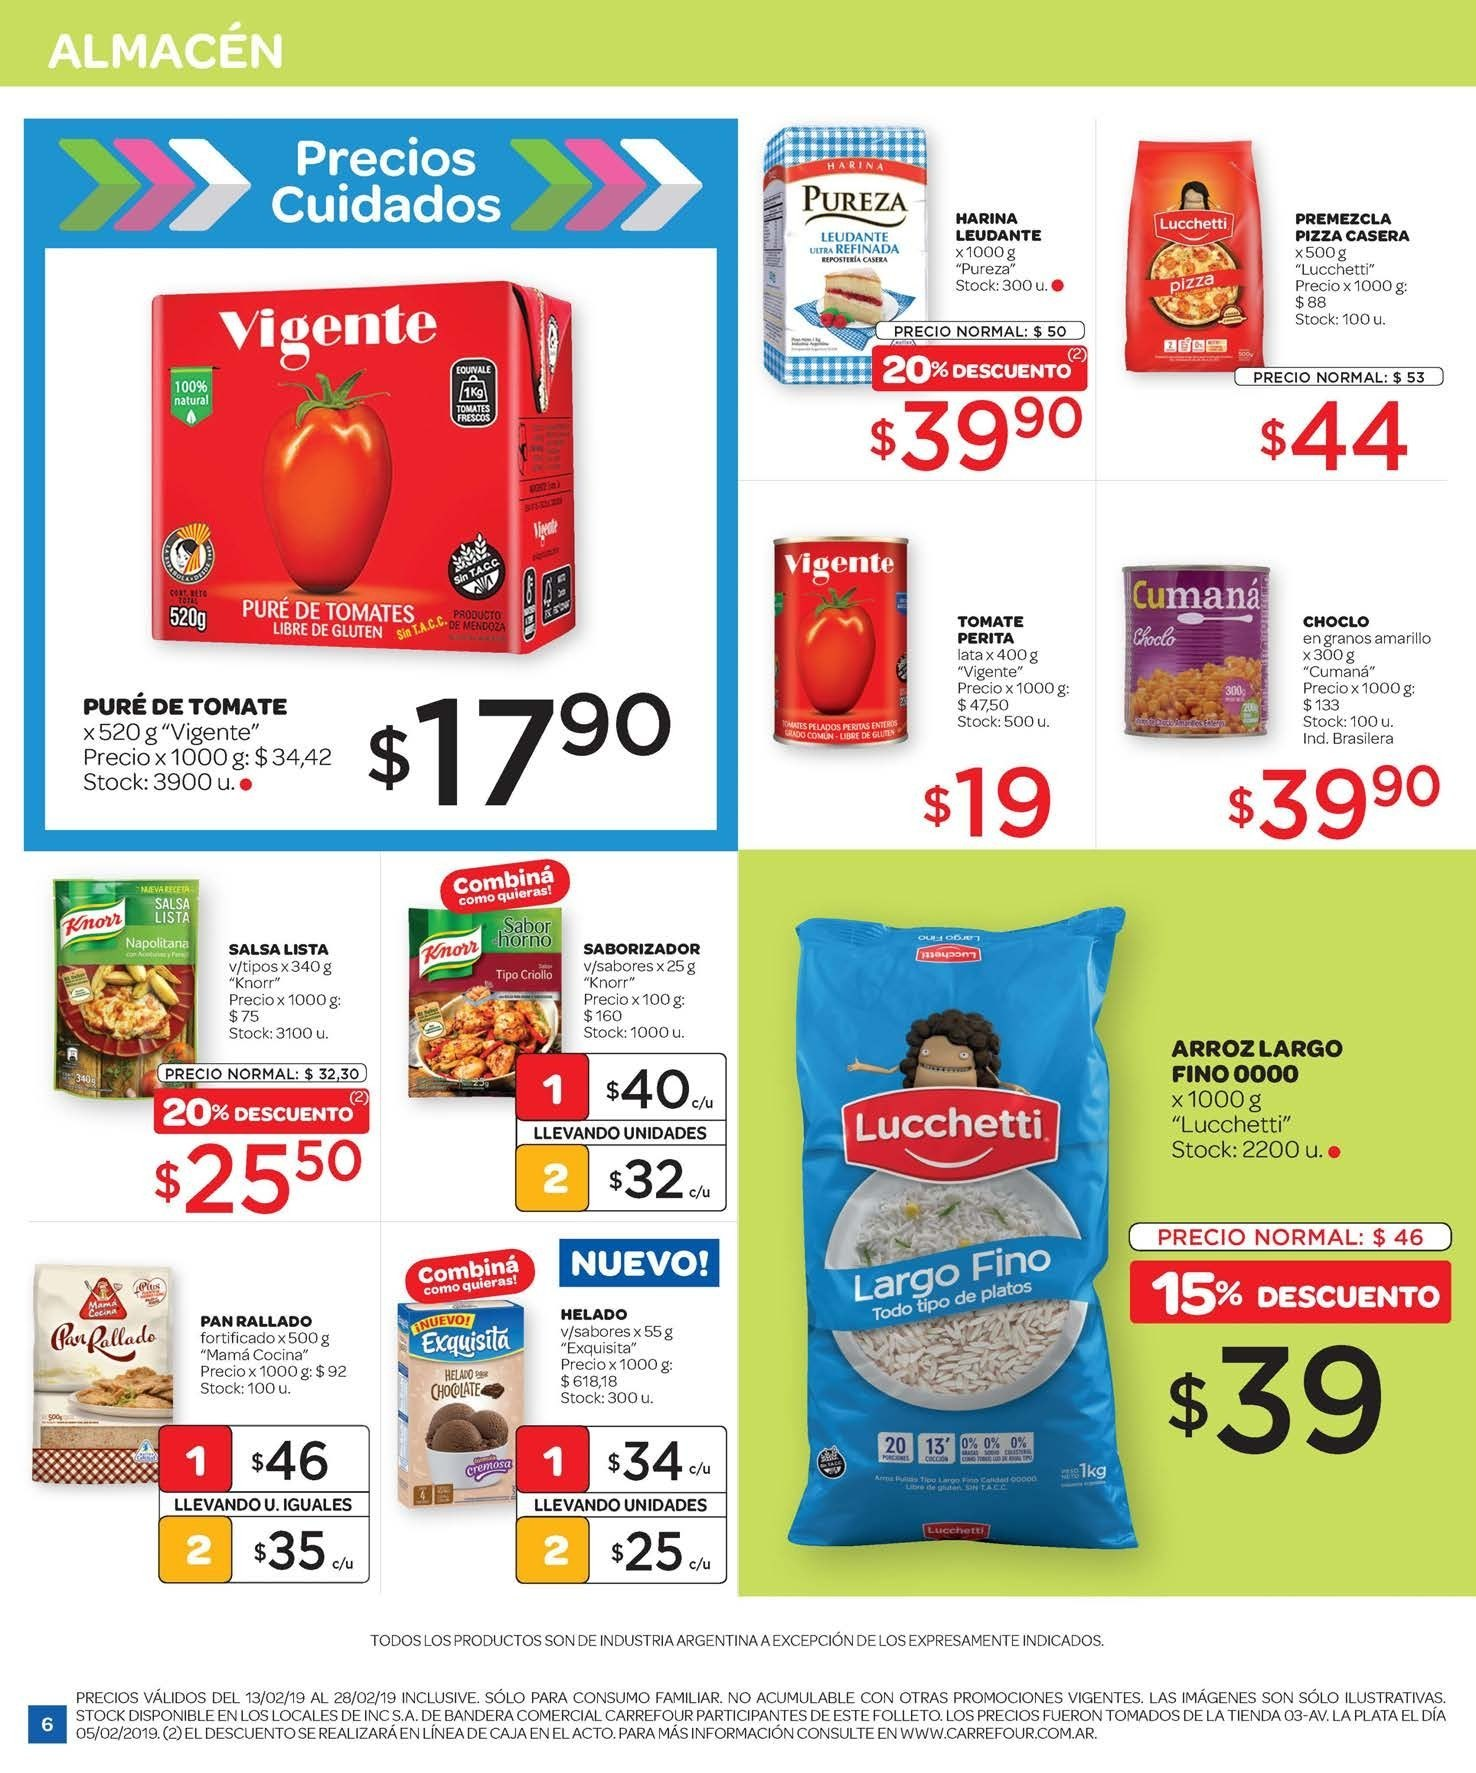 Folleto actual Carrefour - 13.2.2019 - 28.2.2019 - Ventas - tomate a7389cd97e33